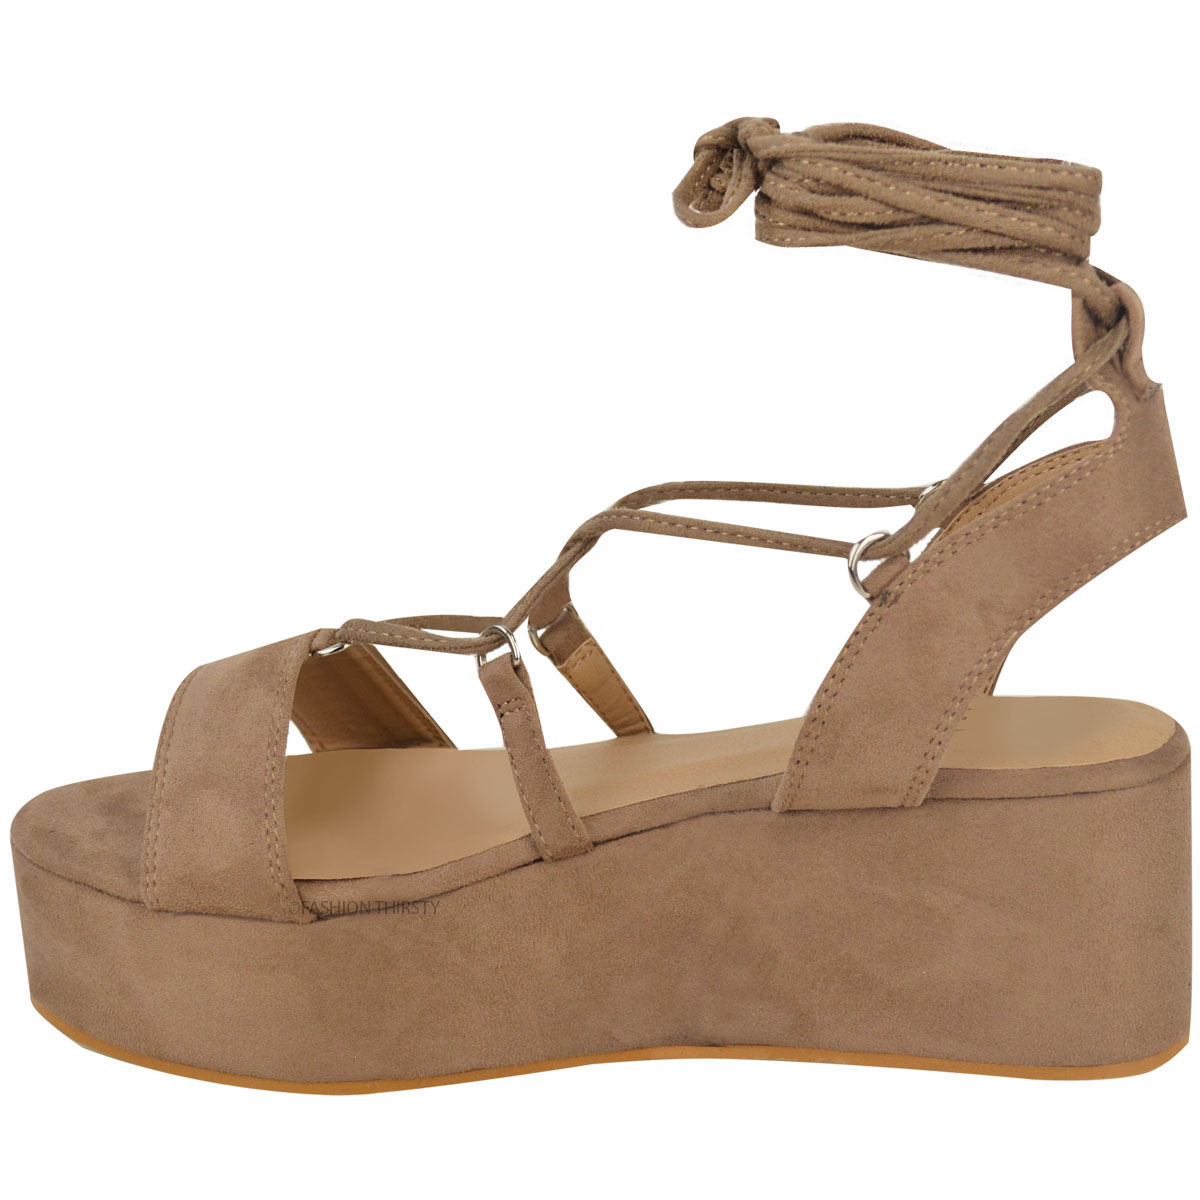 Shop Platform sandals at 440v.cf & browse our latest collection of accessibly priced Platform sandals for Women, in a wide variety of on-trend styles.